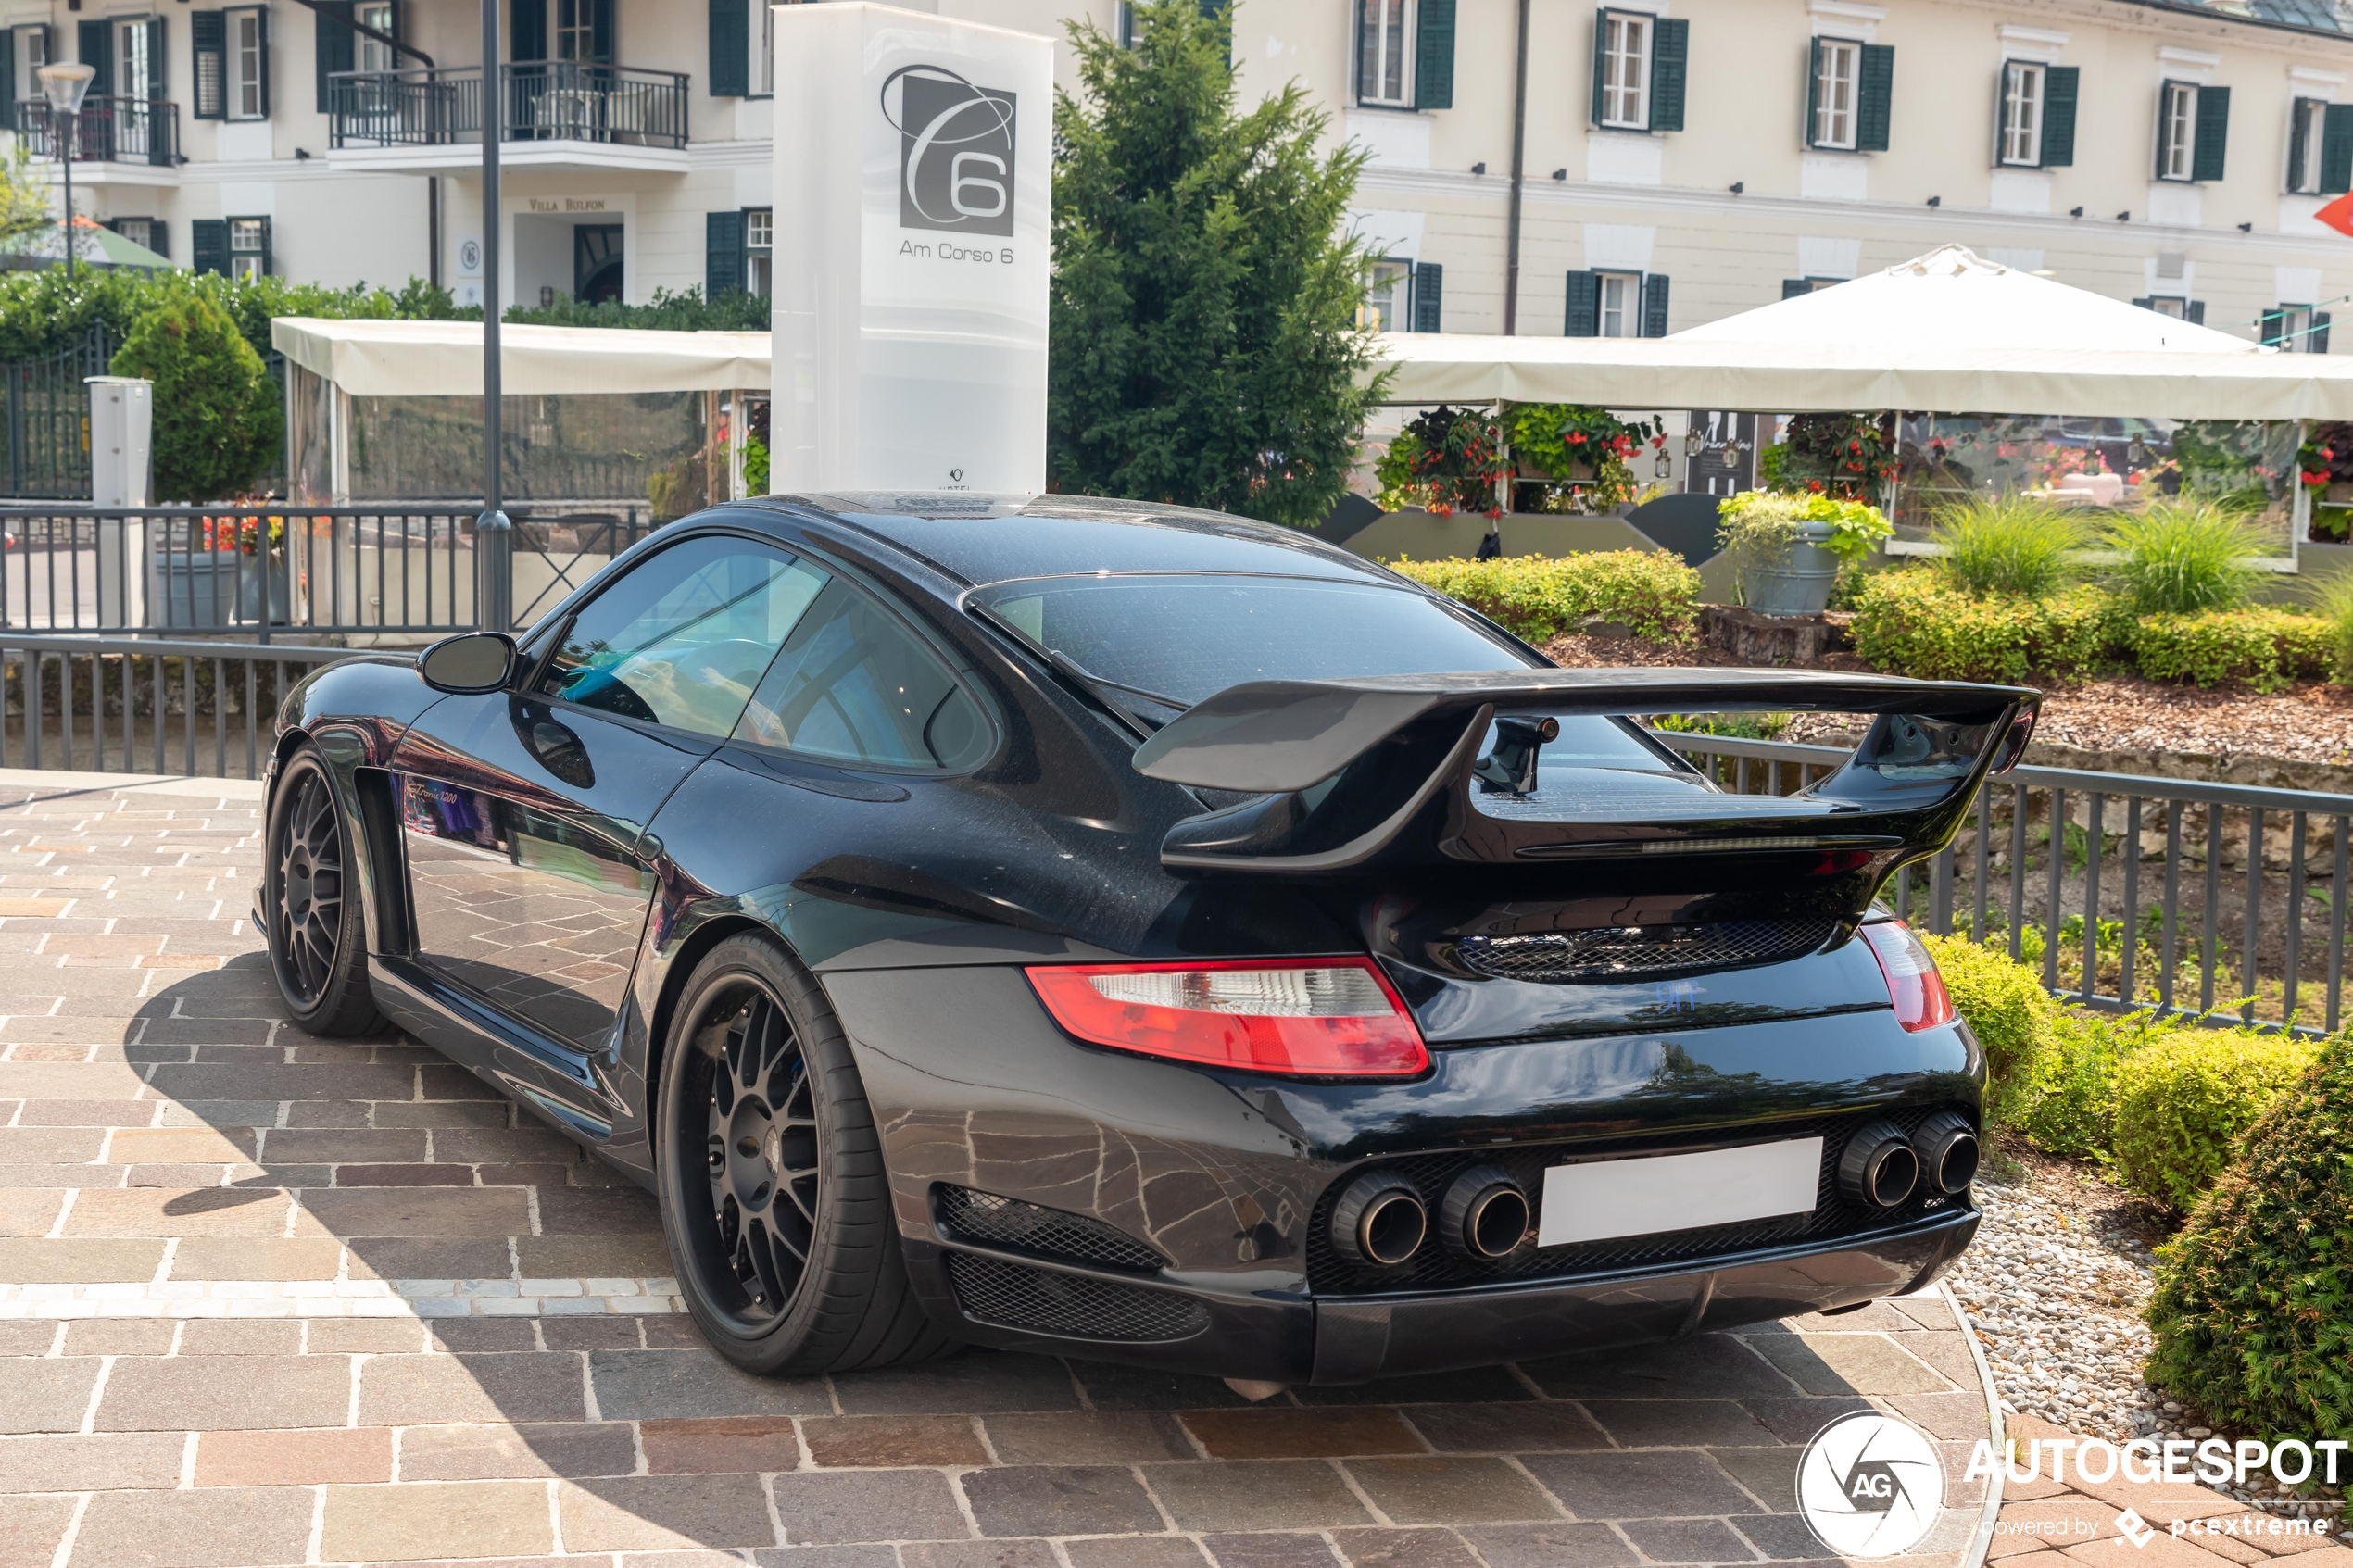 This Porsche is tuned by multiple tuners